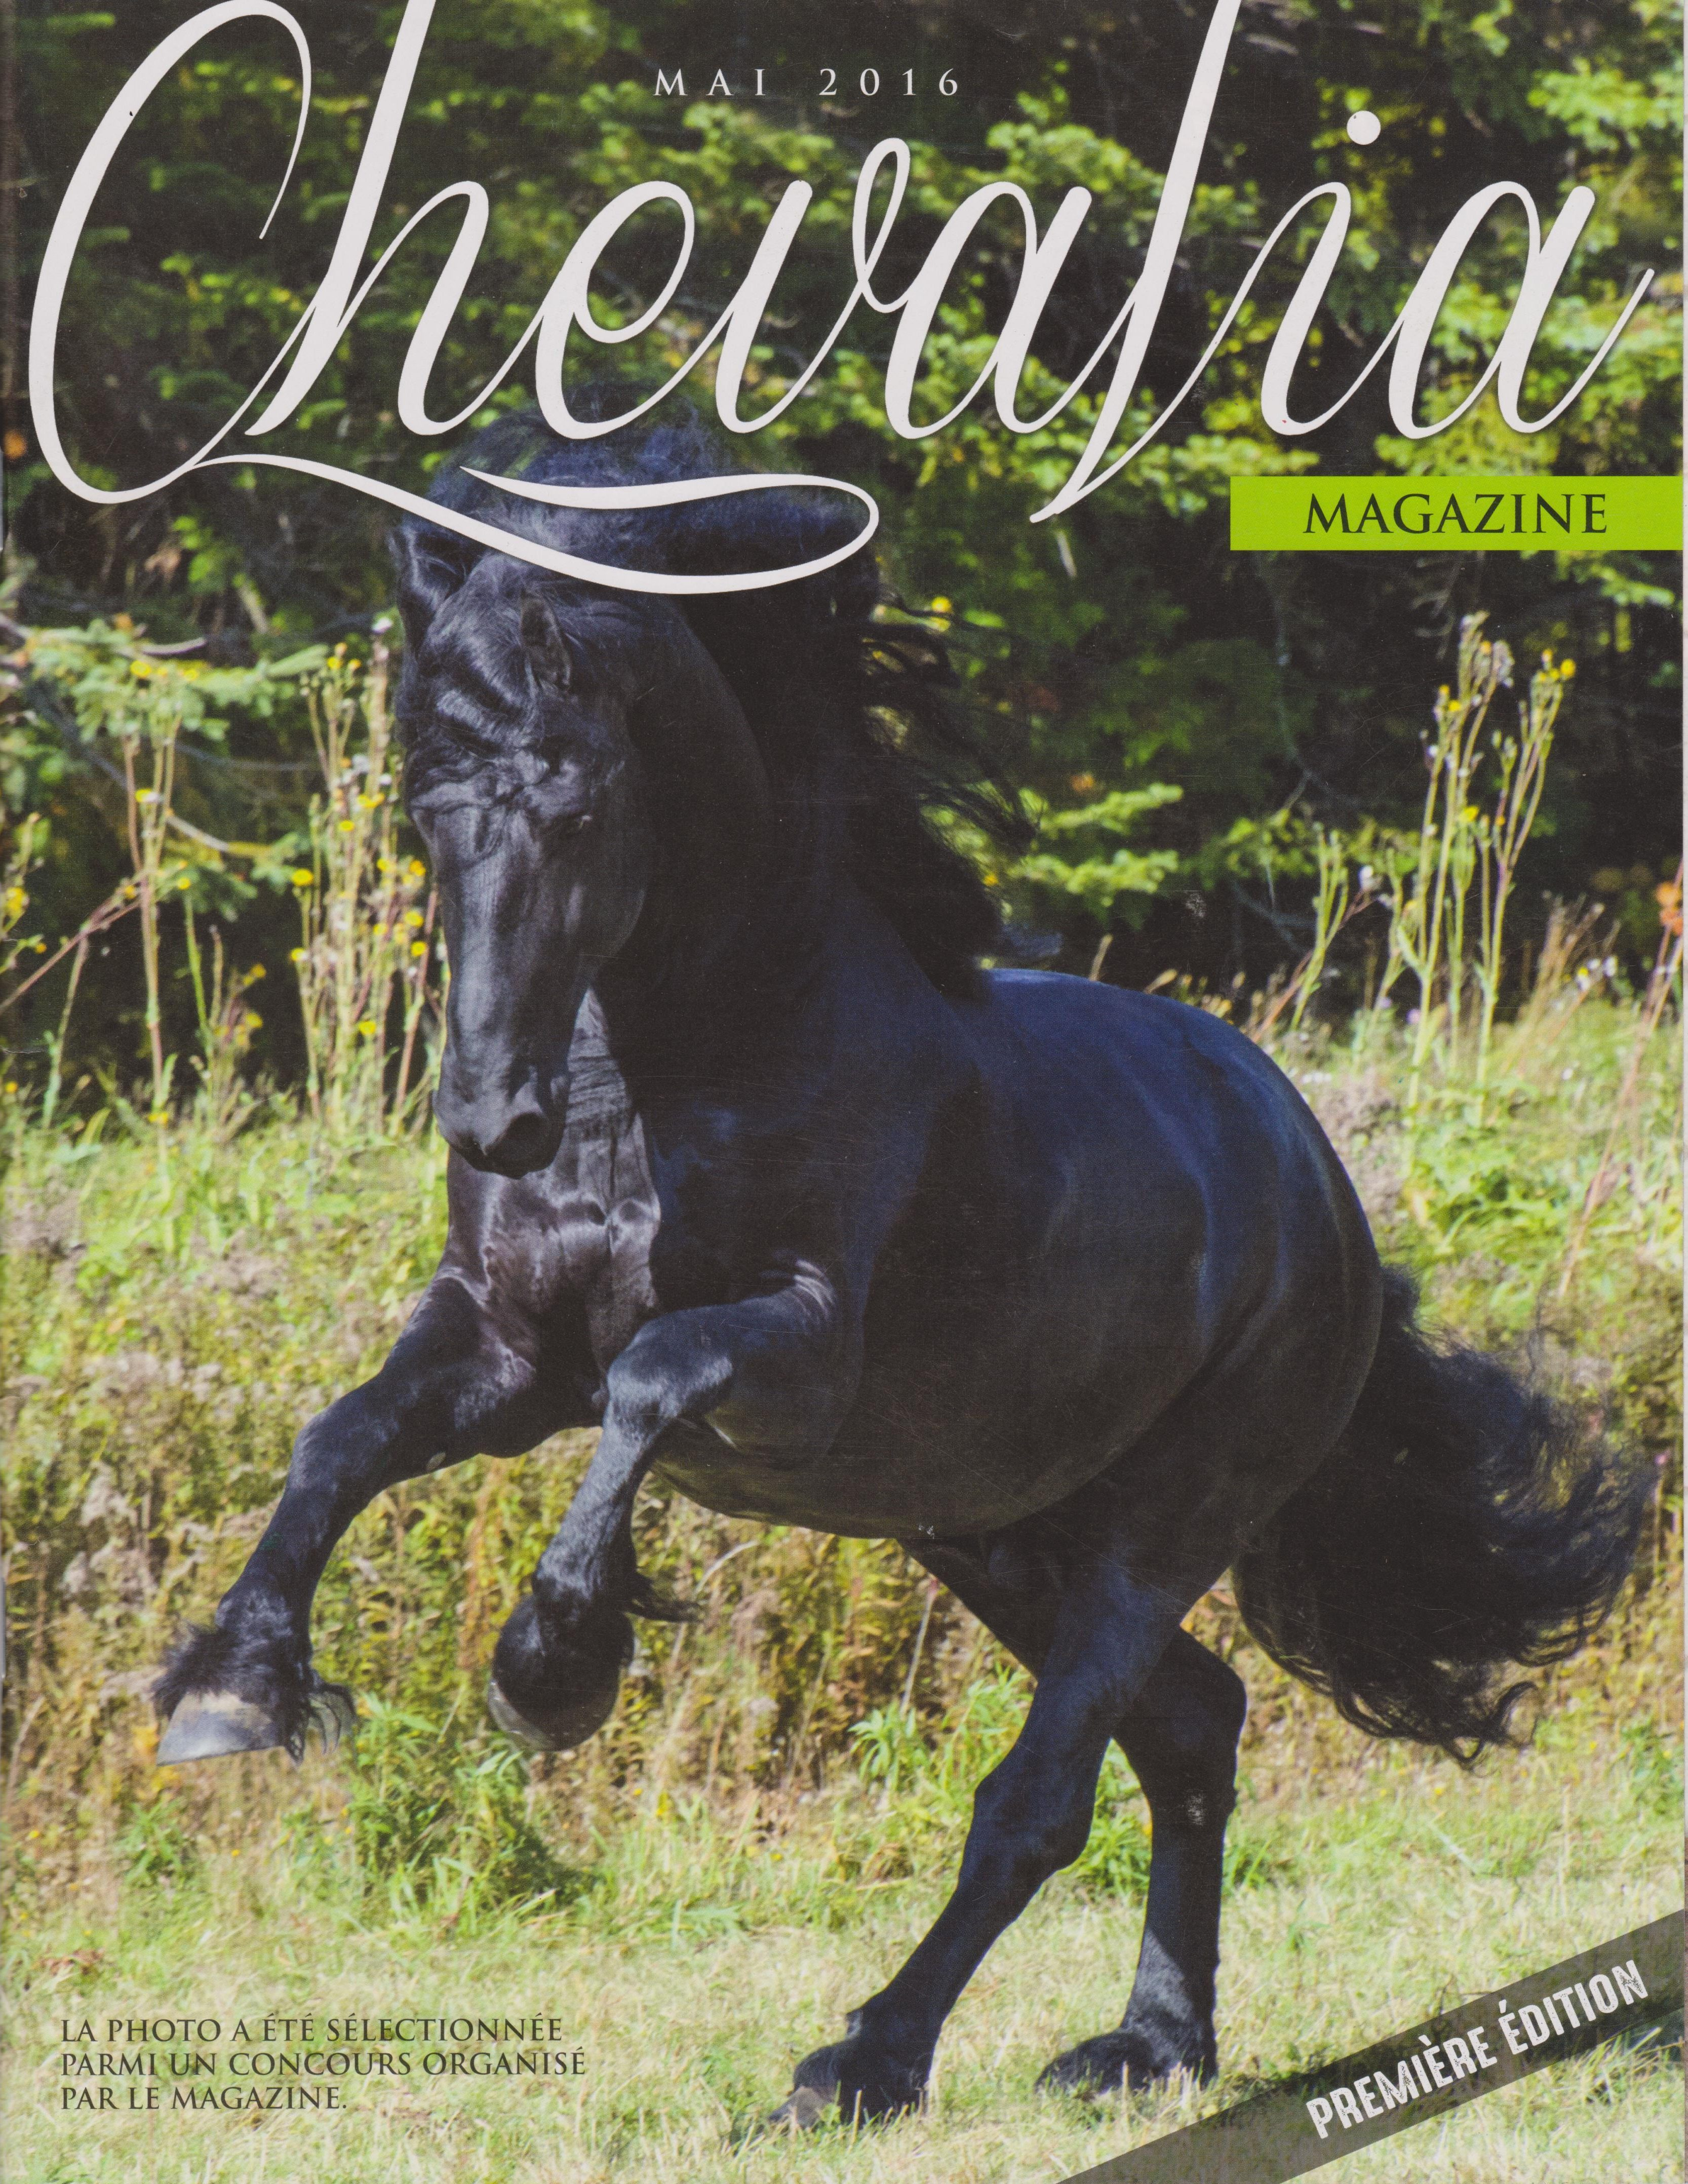 star horse appearing in the medias chevalia cover magazine